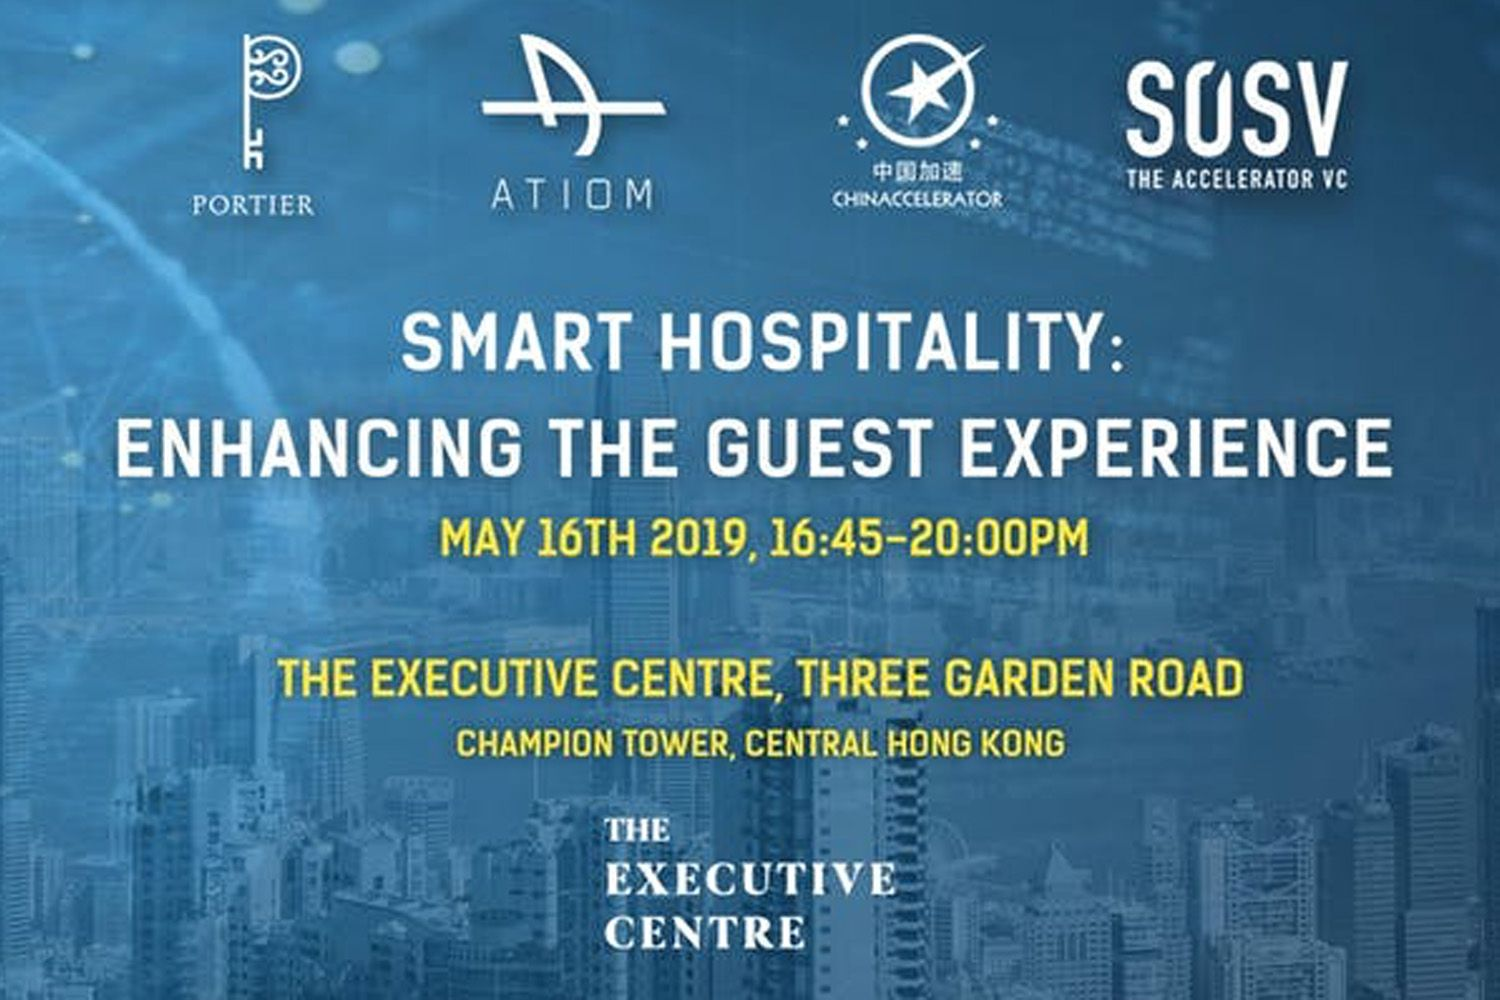 Chinaccelerator, Portier Technologies and ATIOM Hosts a Smart Hospitality Forum in Hong Kong